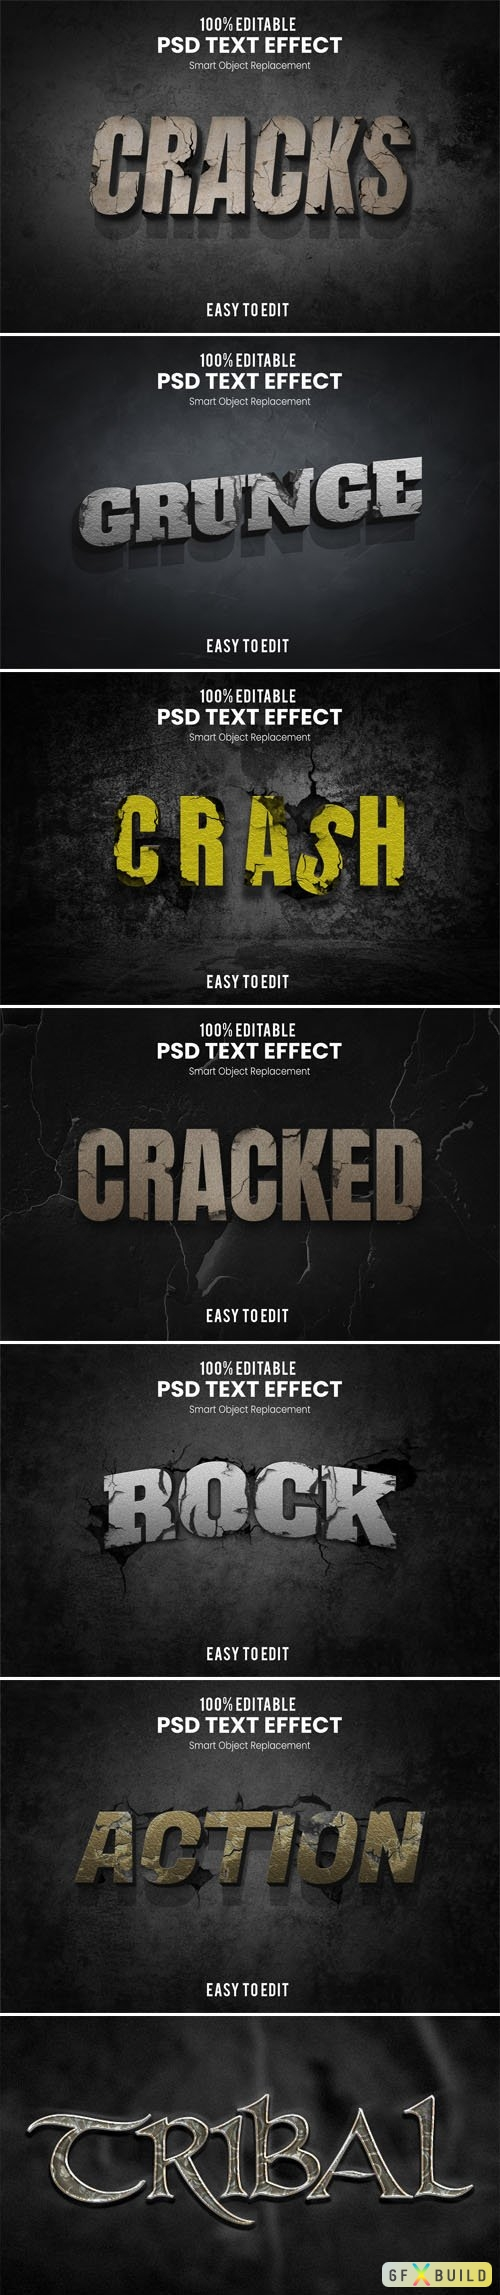 7 Grunge and Cracks PSD Text Effects